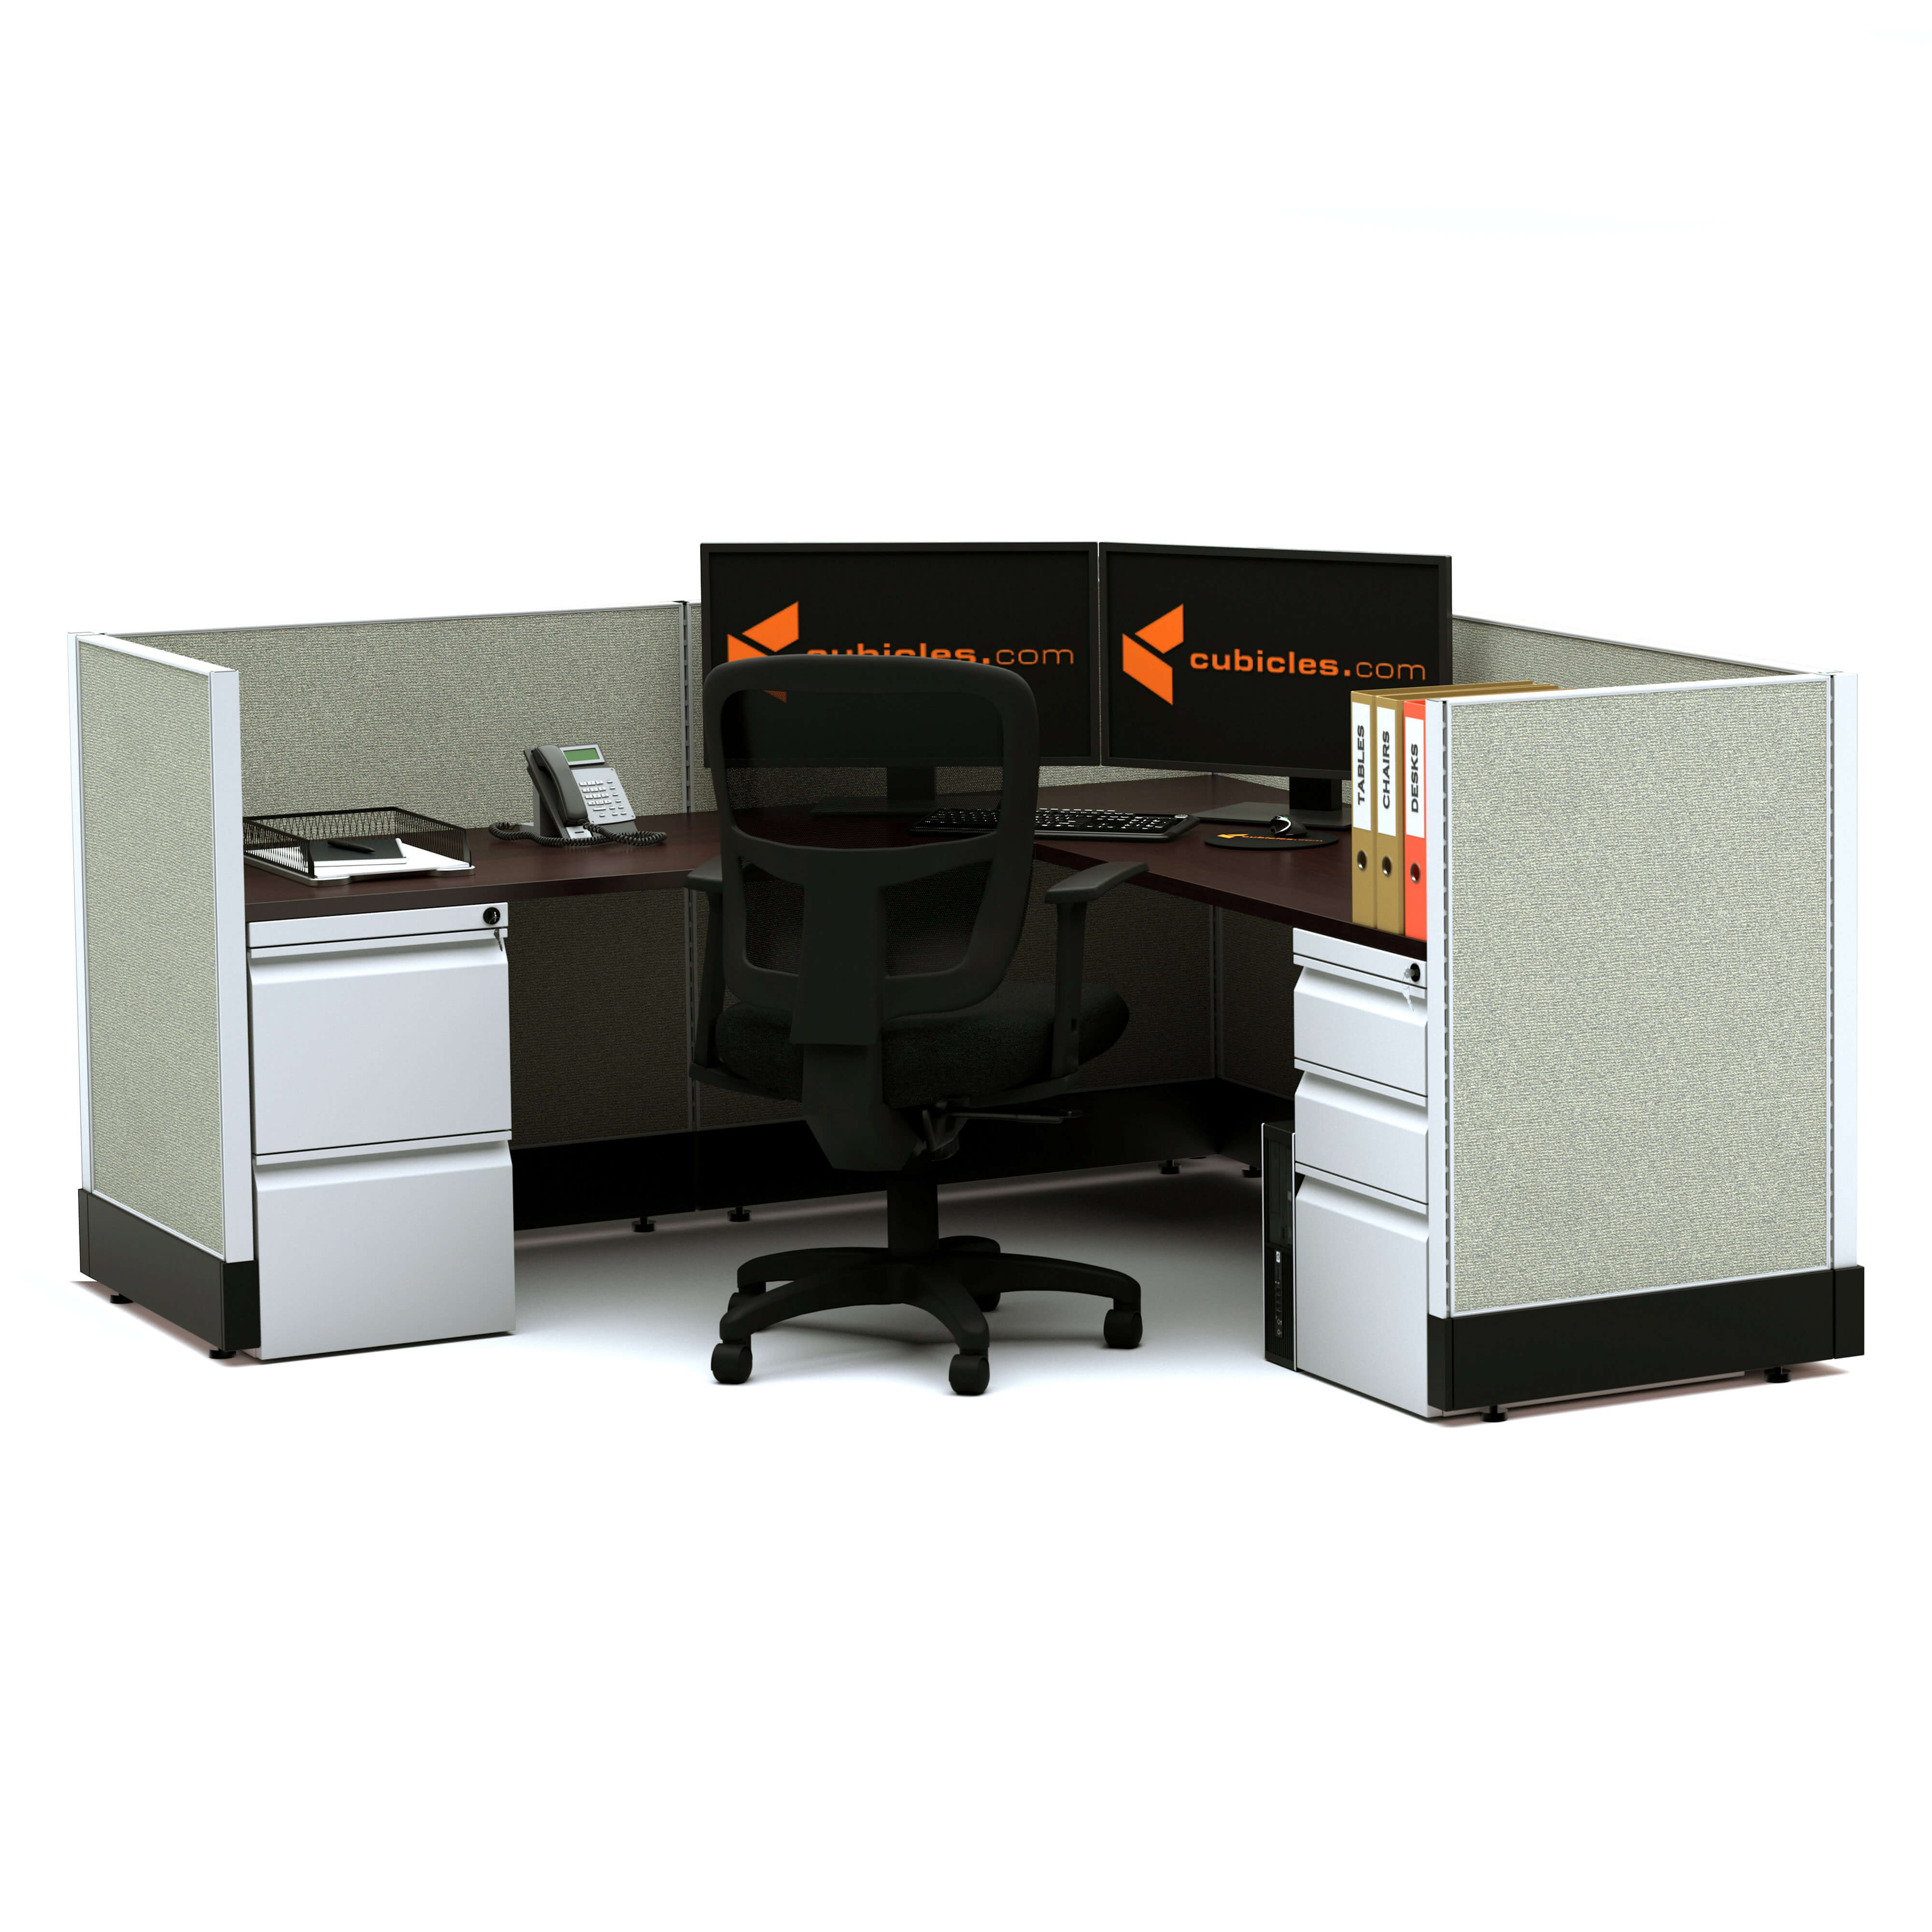 Modular office furniture system furniture 39 powered